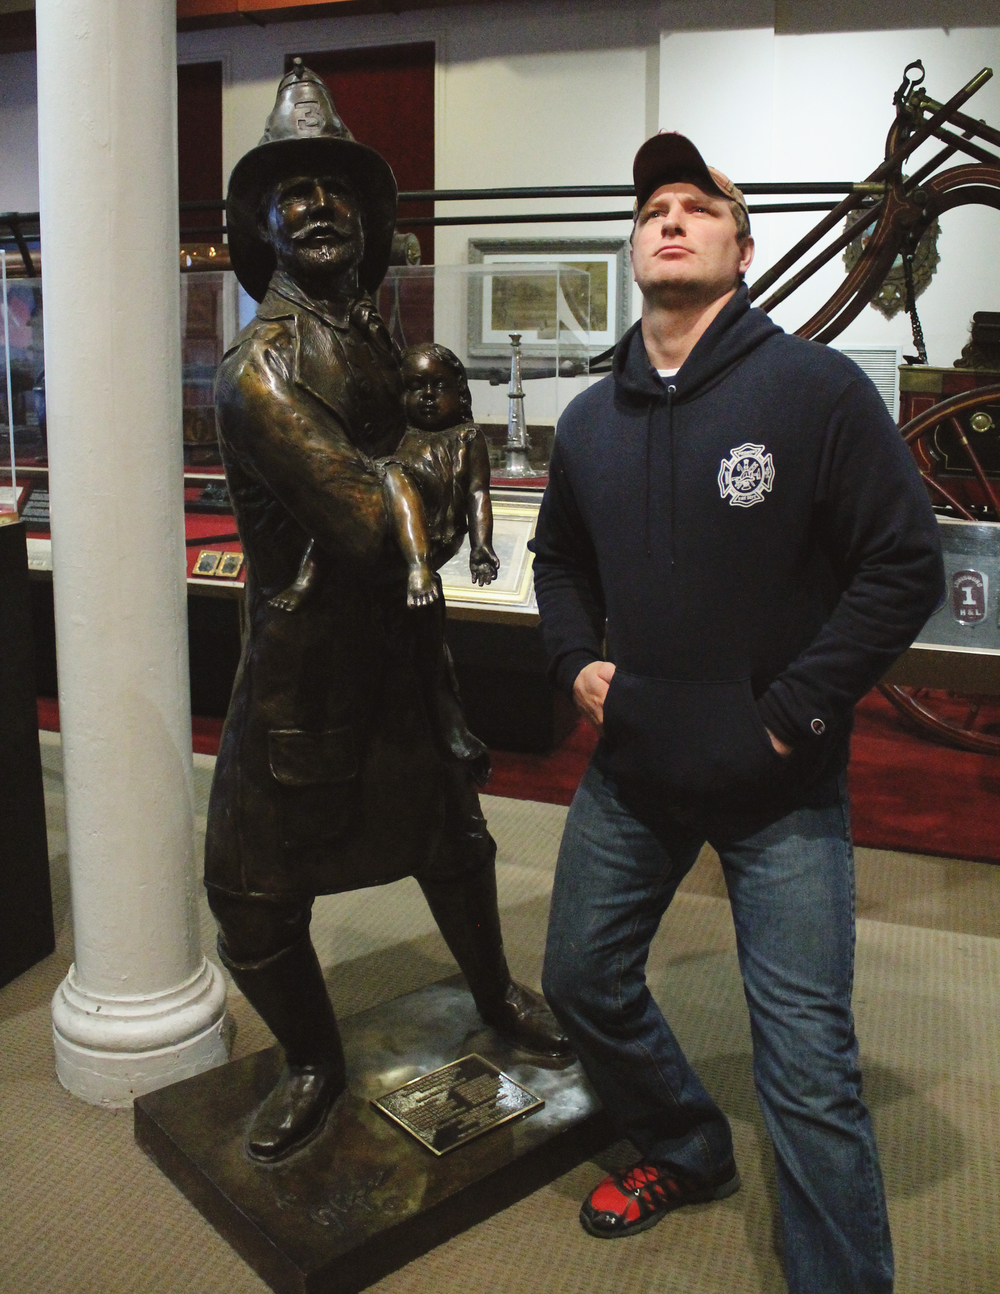 James at the Fire Museum